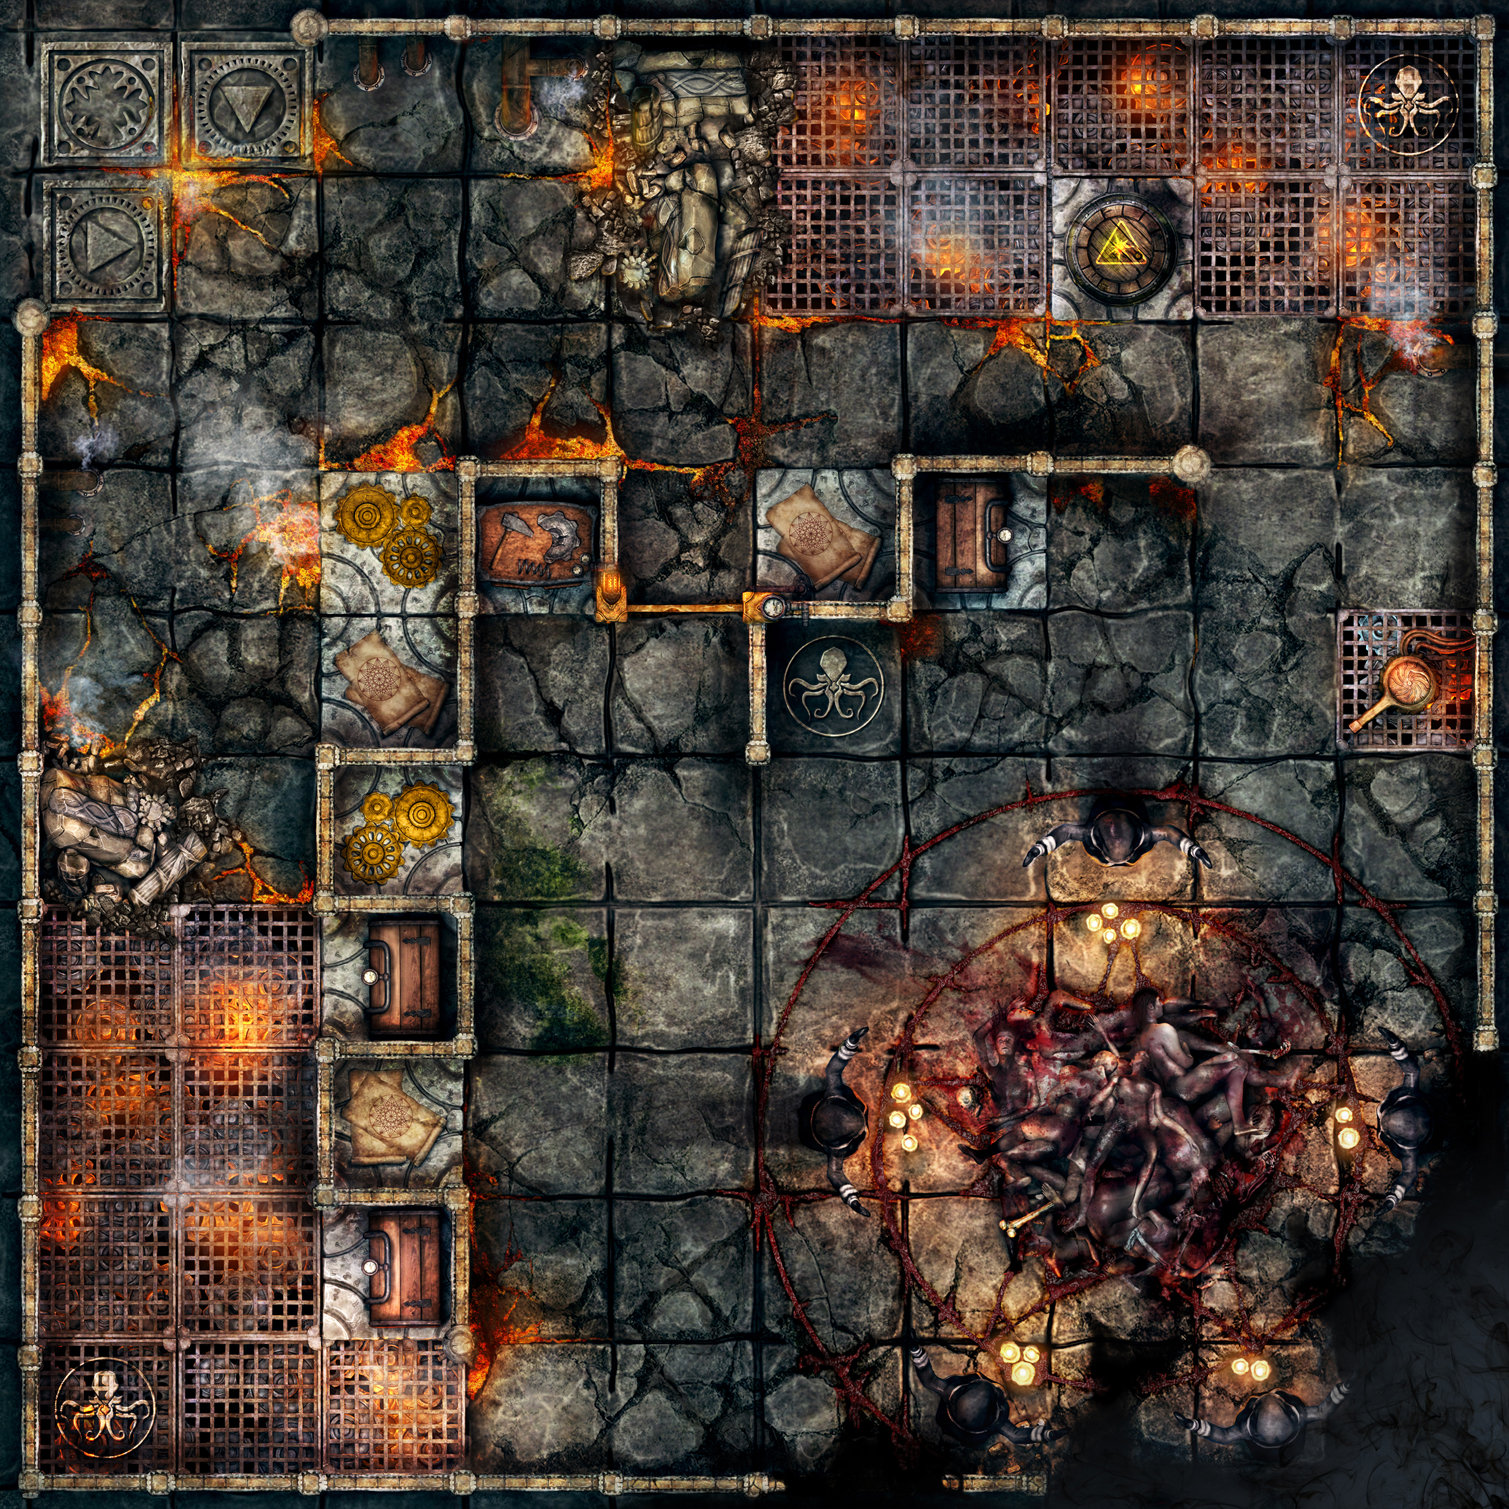 Final chapter tile with a dark ritual.